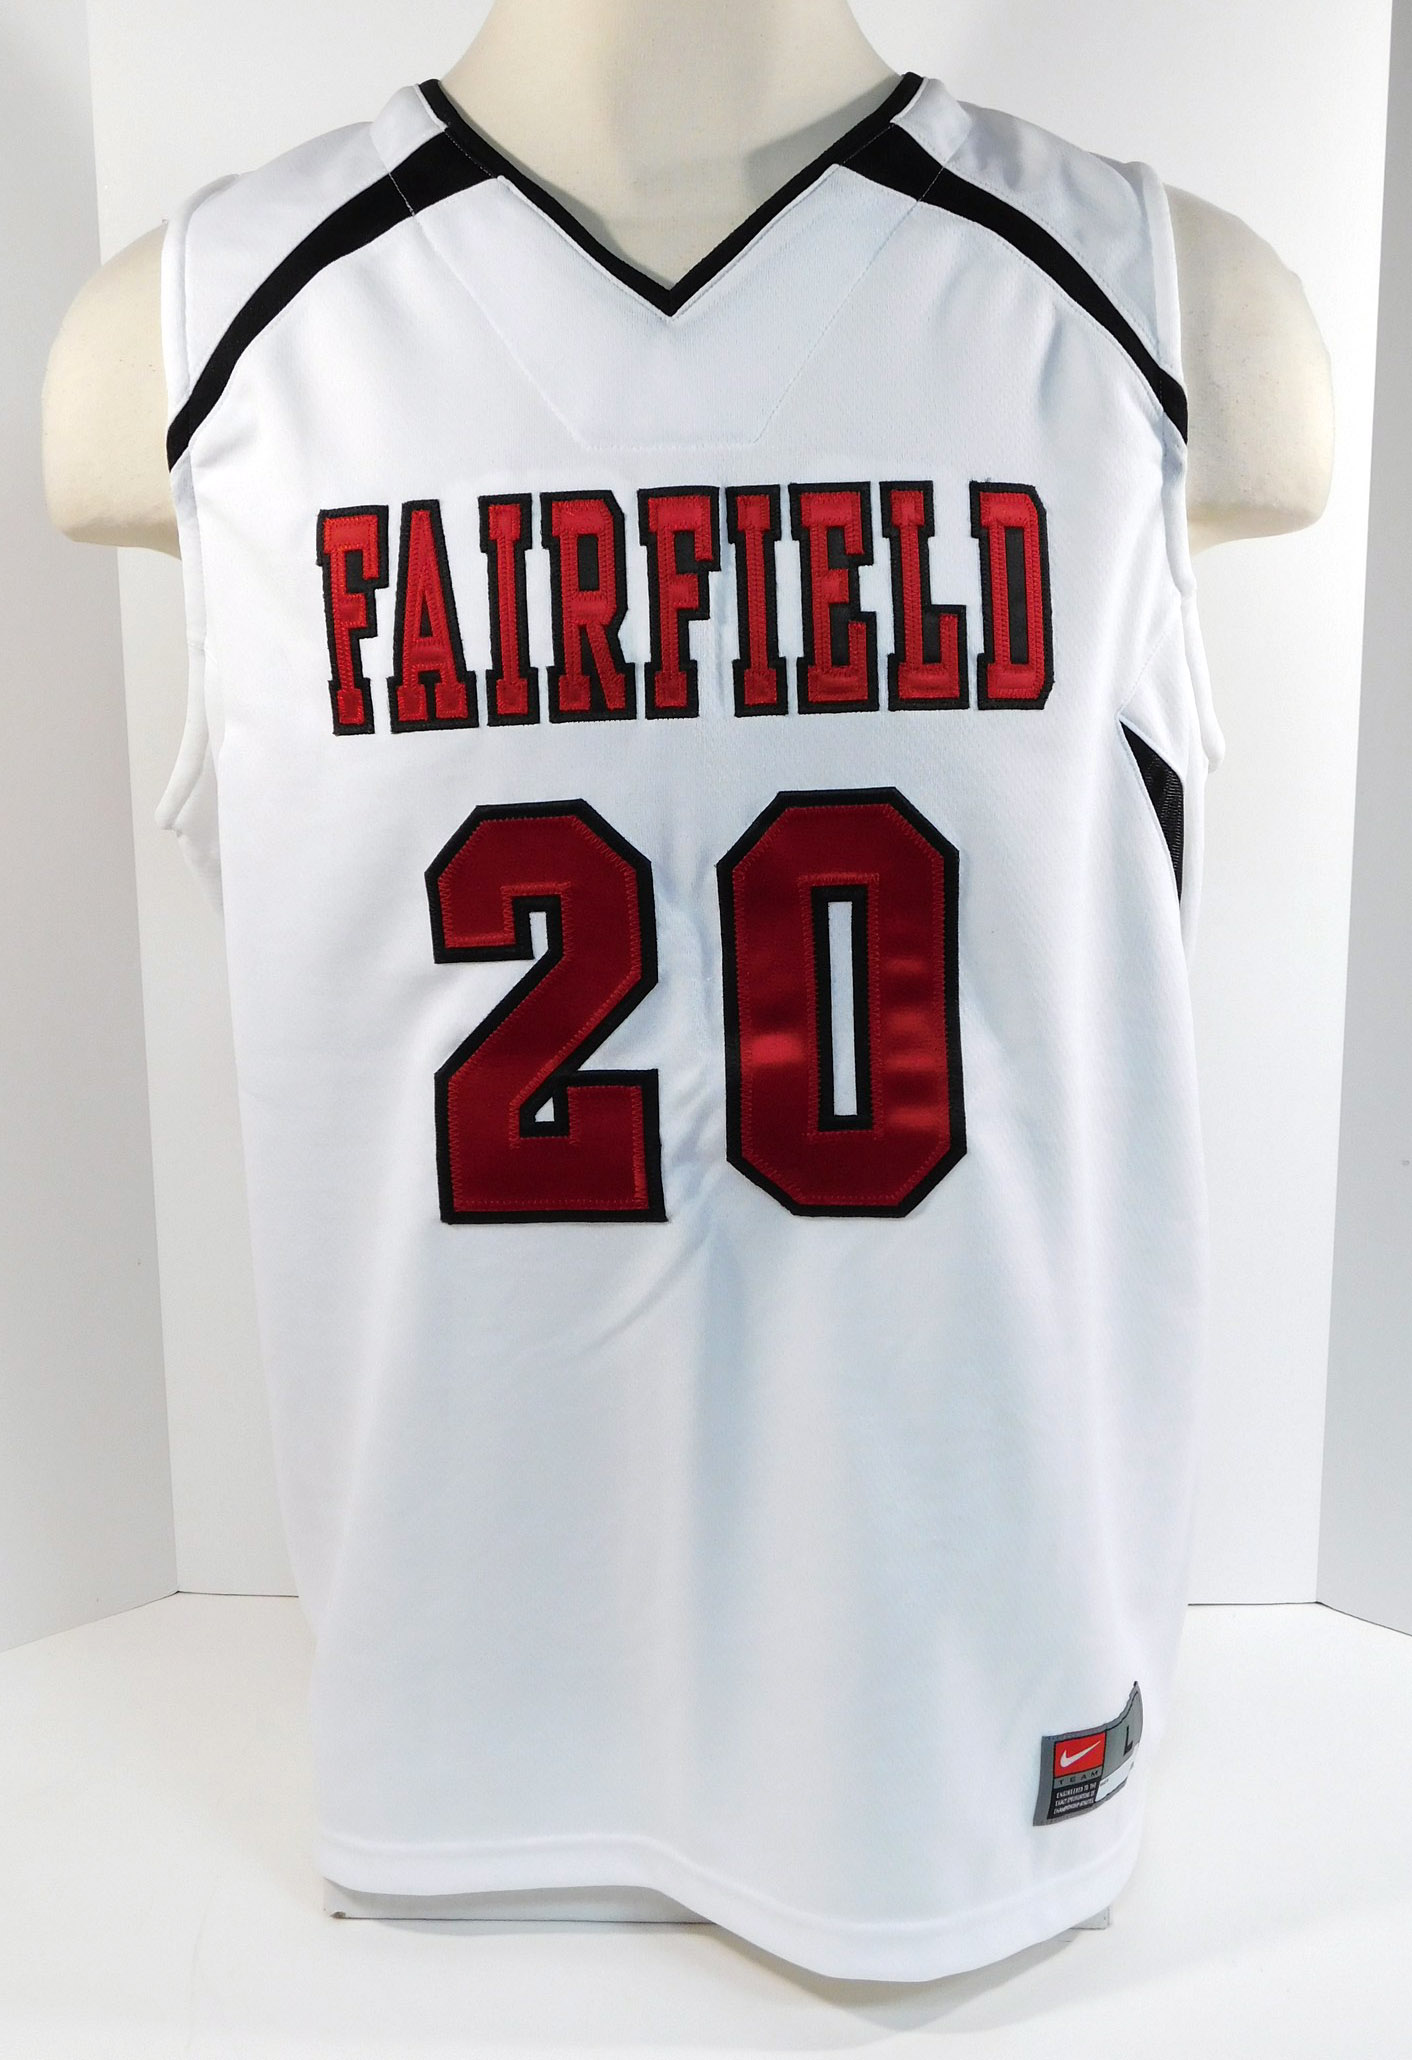 meet a4c73 f43ea Fairfield University Stags #20 Game Used Women's Basketball ...